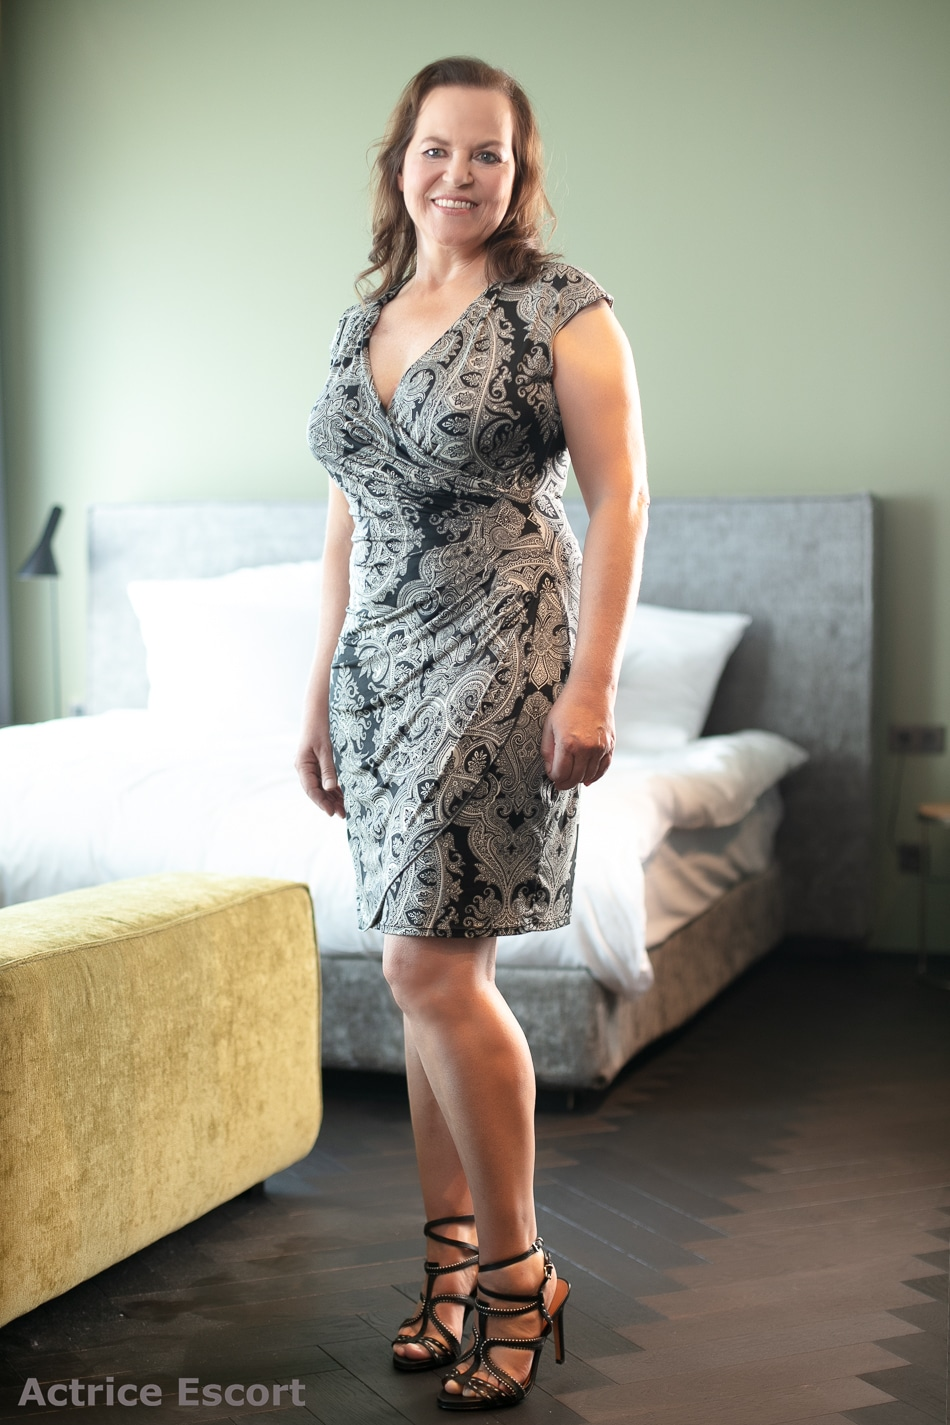 Bettina reife Frau Escortservice Duesseldorf(5)